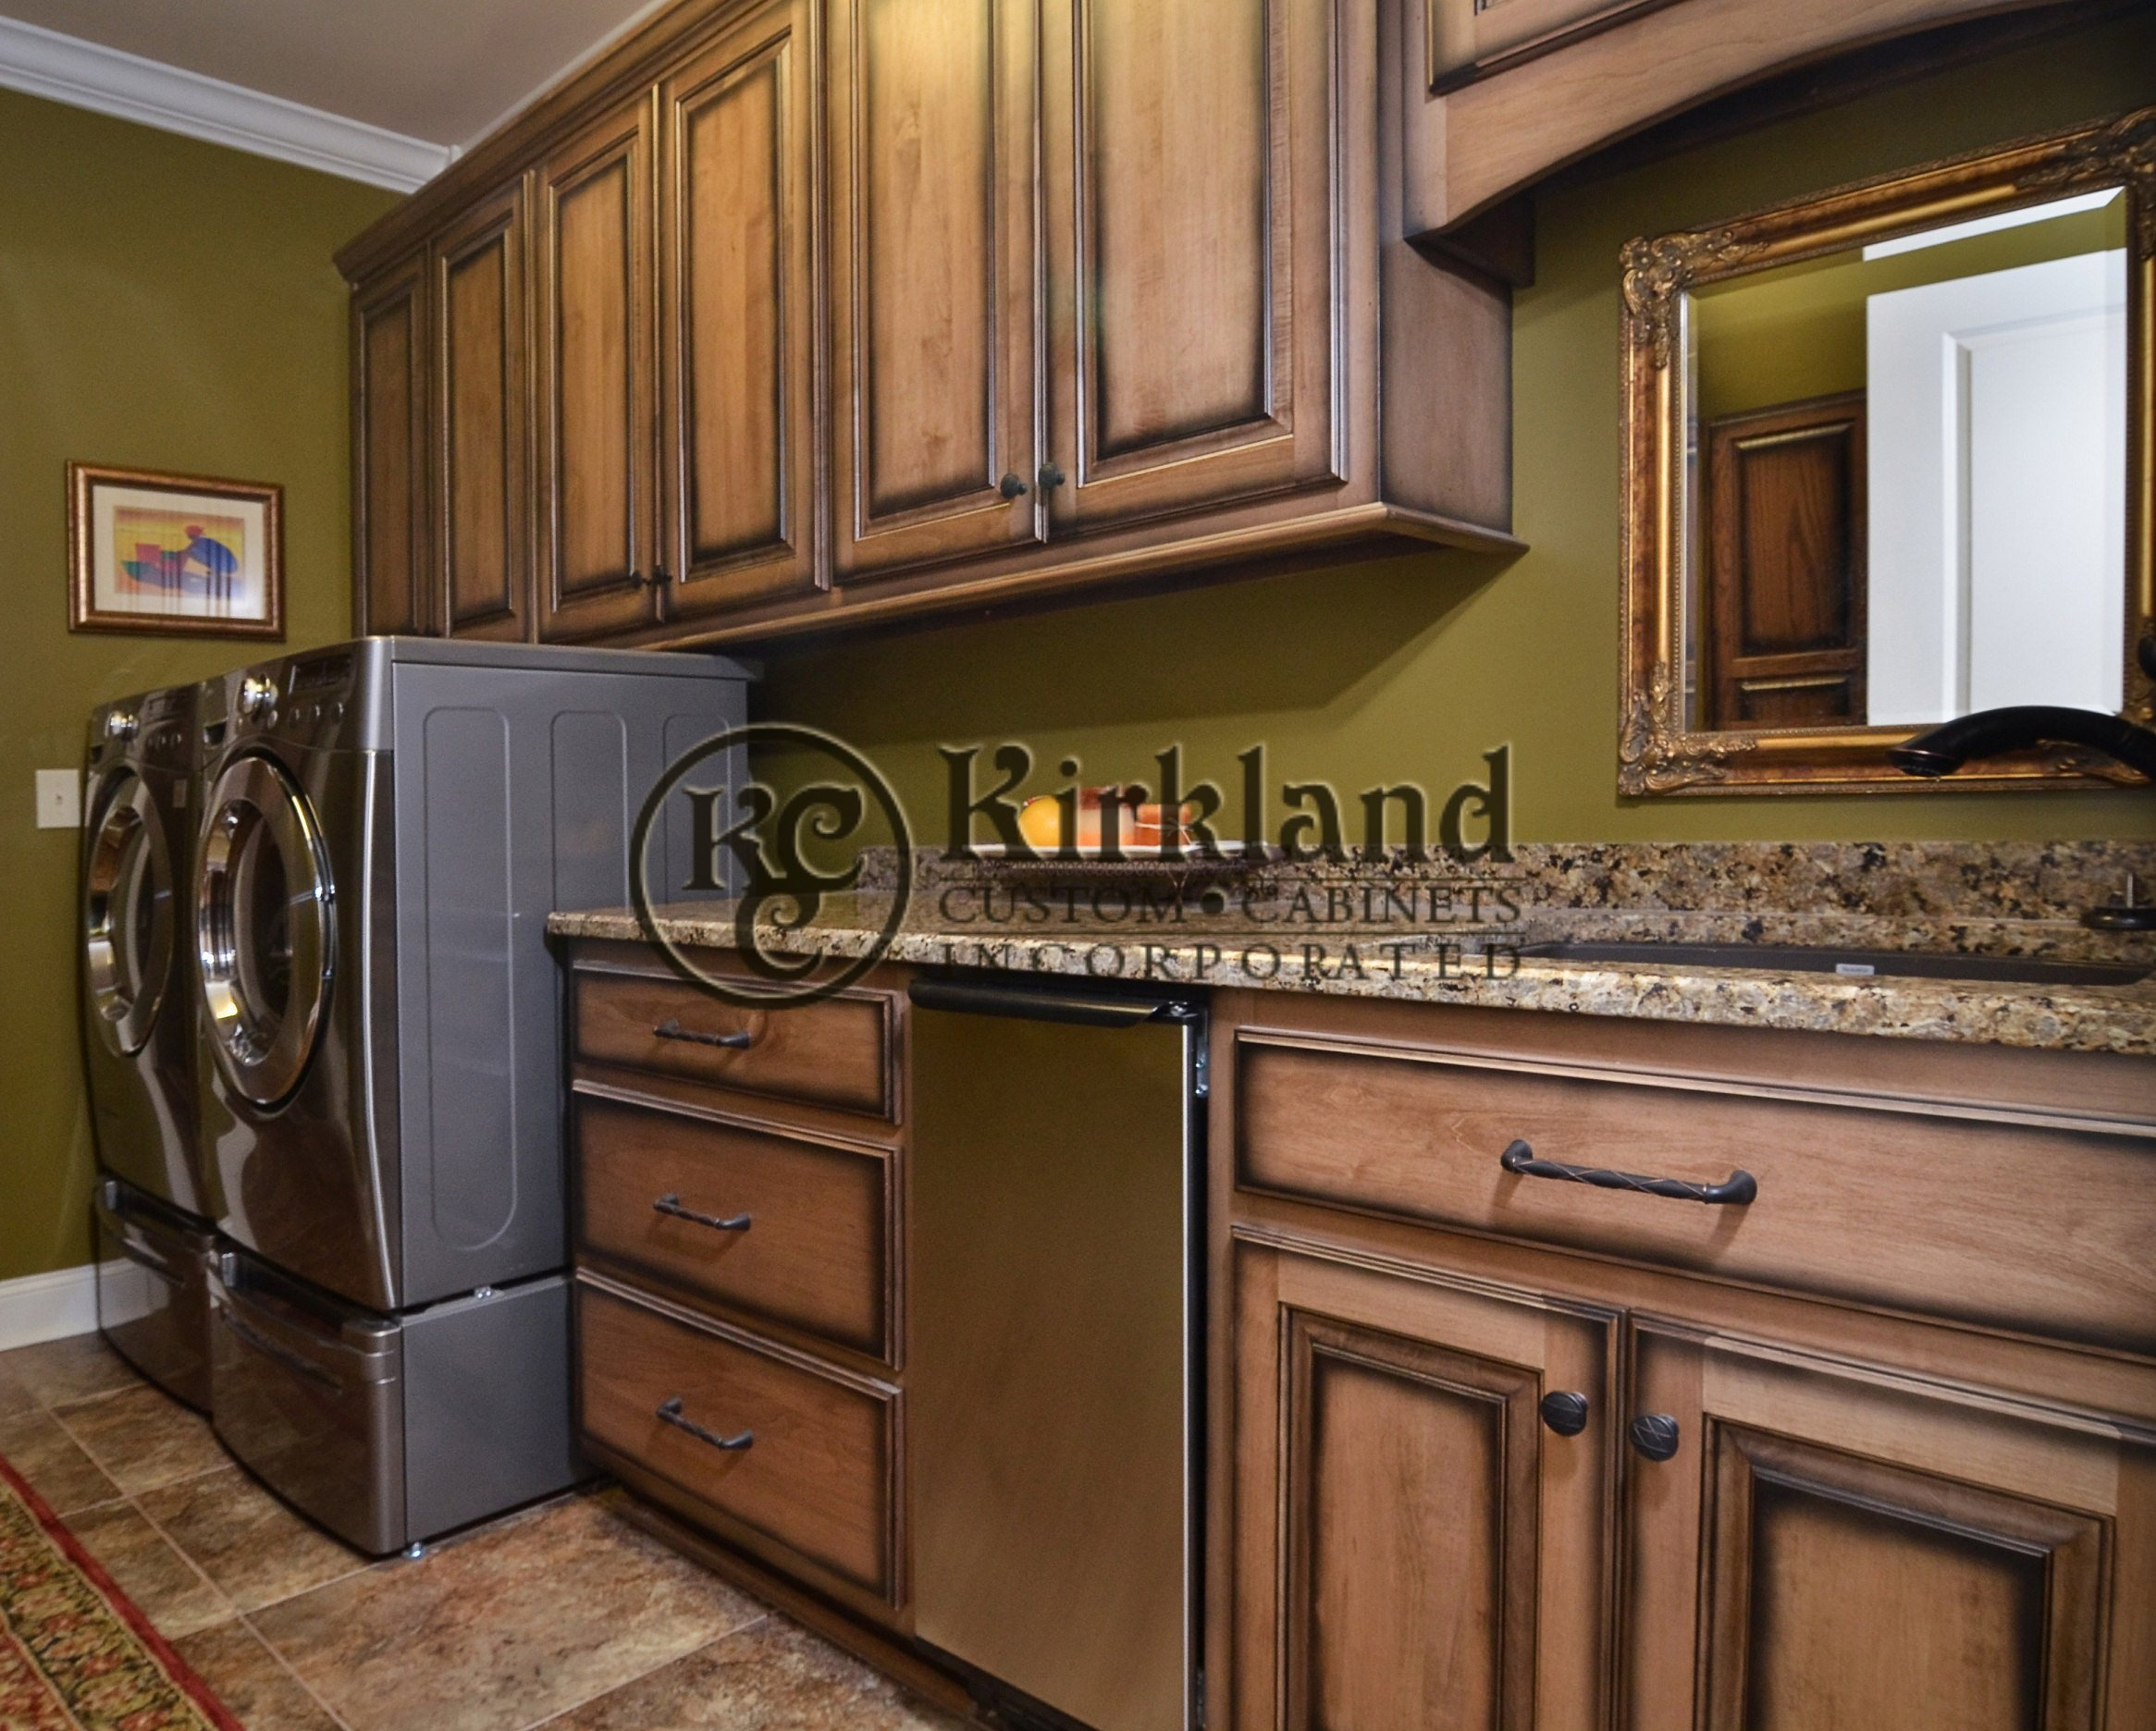 Custom 12 kirkland custom cabinets inc for Black stained cabinets